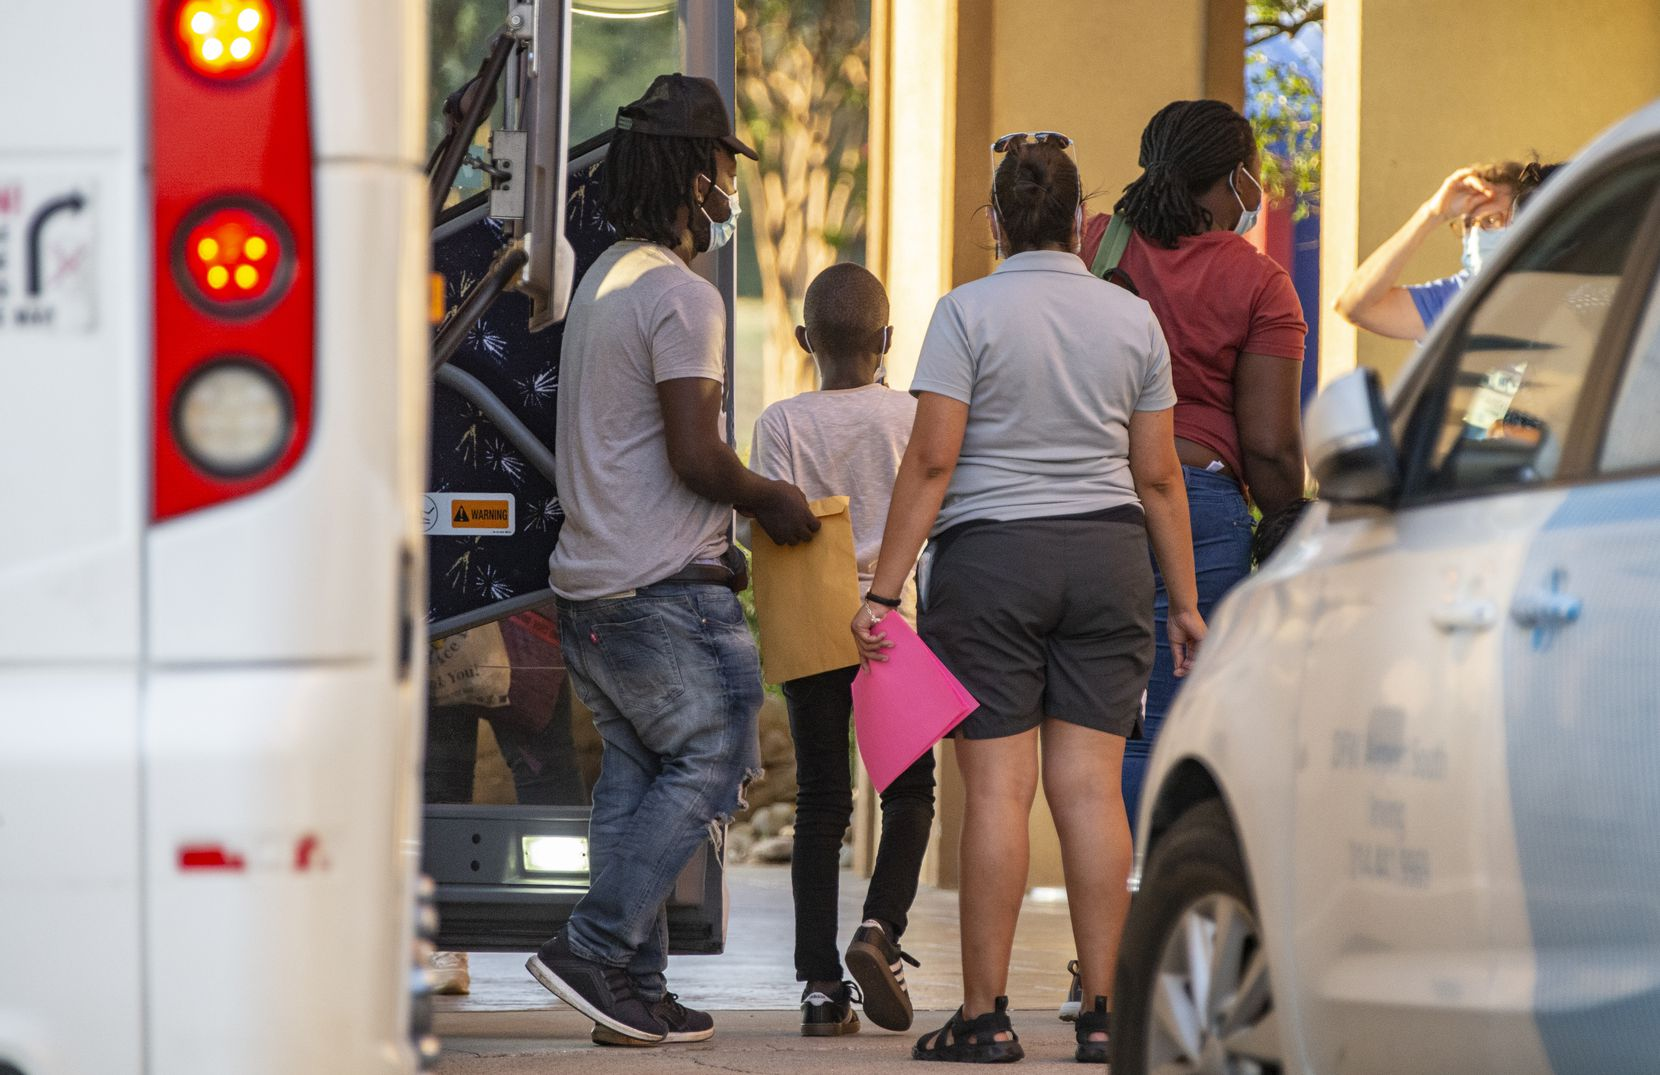 Volunteers with Faith Forward Dallas helped migrant families from Haiti and Cuba exit a bus at a hotel in Irving on Wednesday. The bus arrived from the border city of Del Rio, Texas.